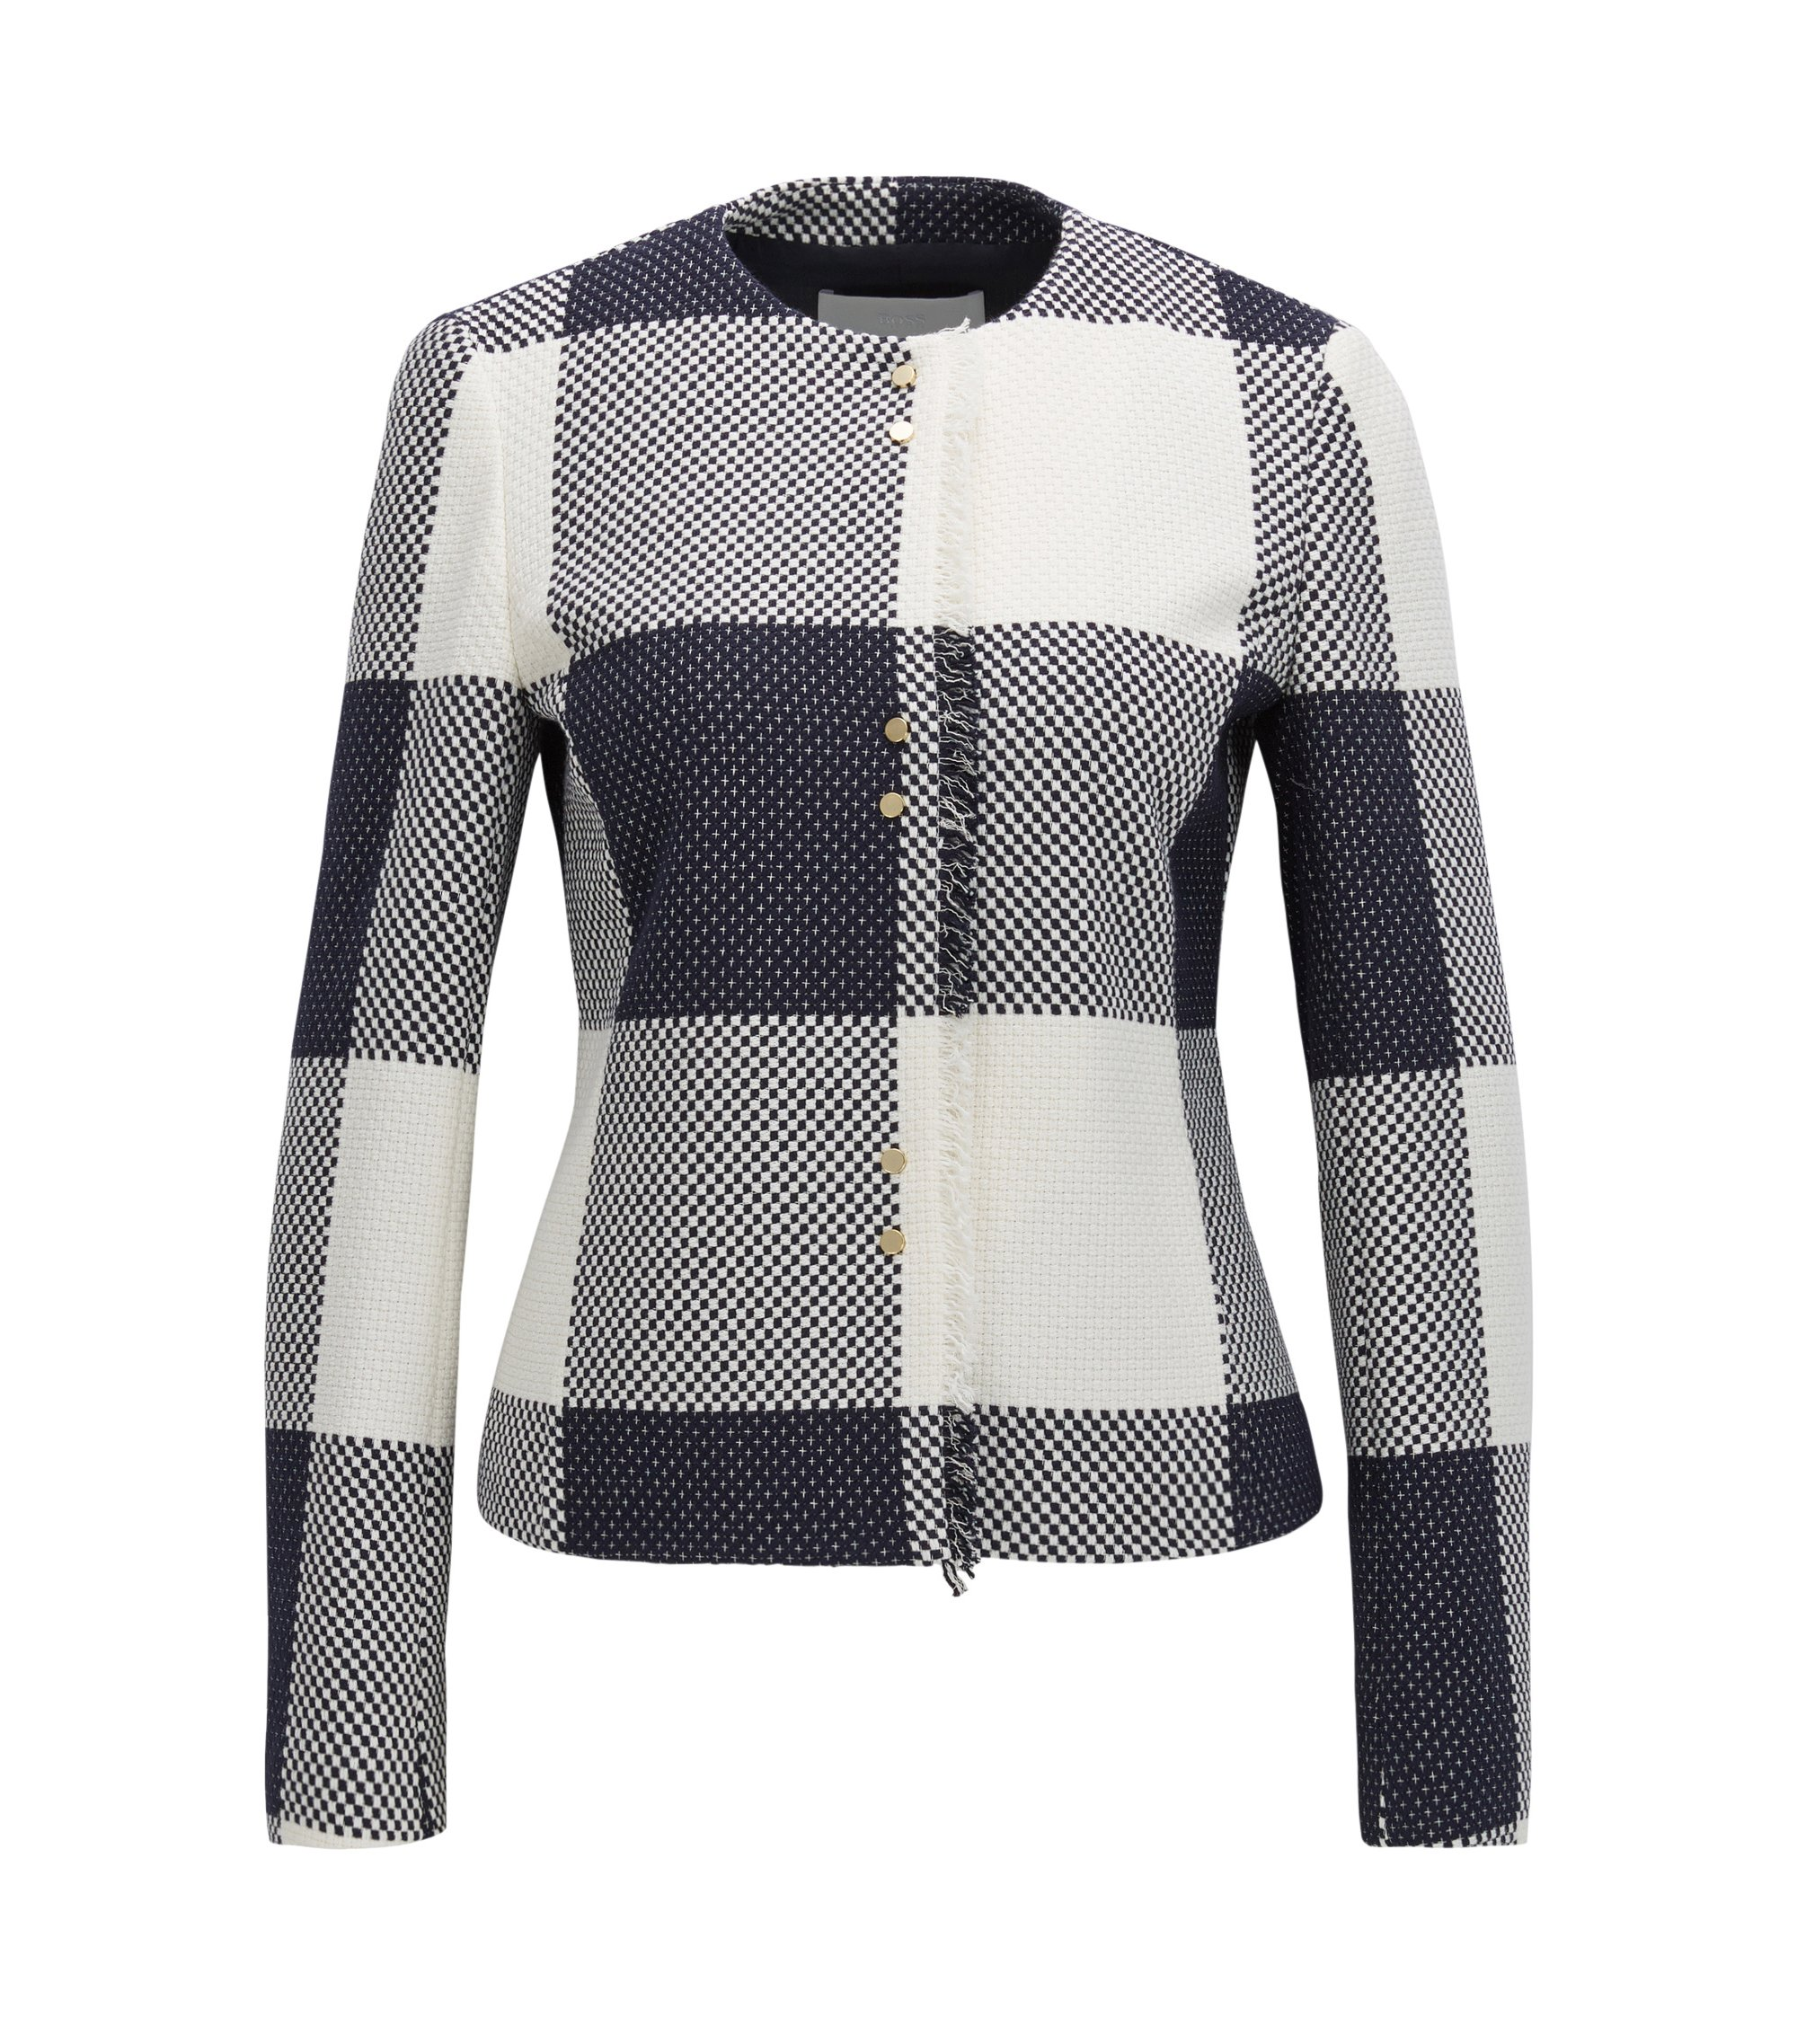 Gingham Cotton Jacket | Karolie, Patterned